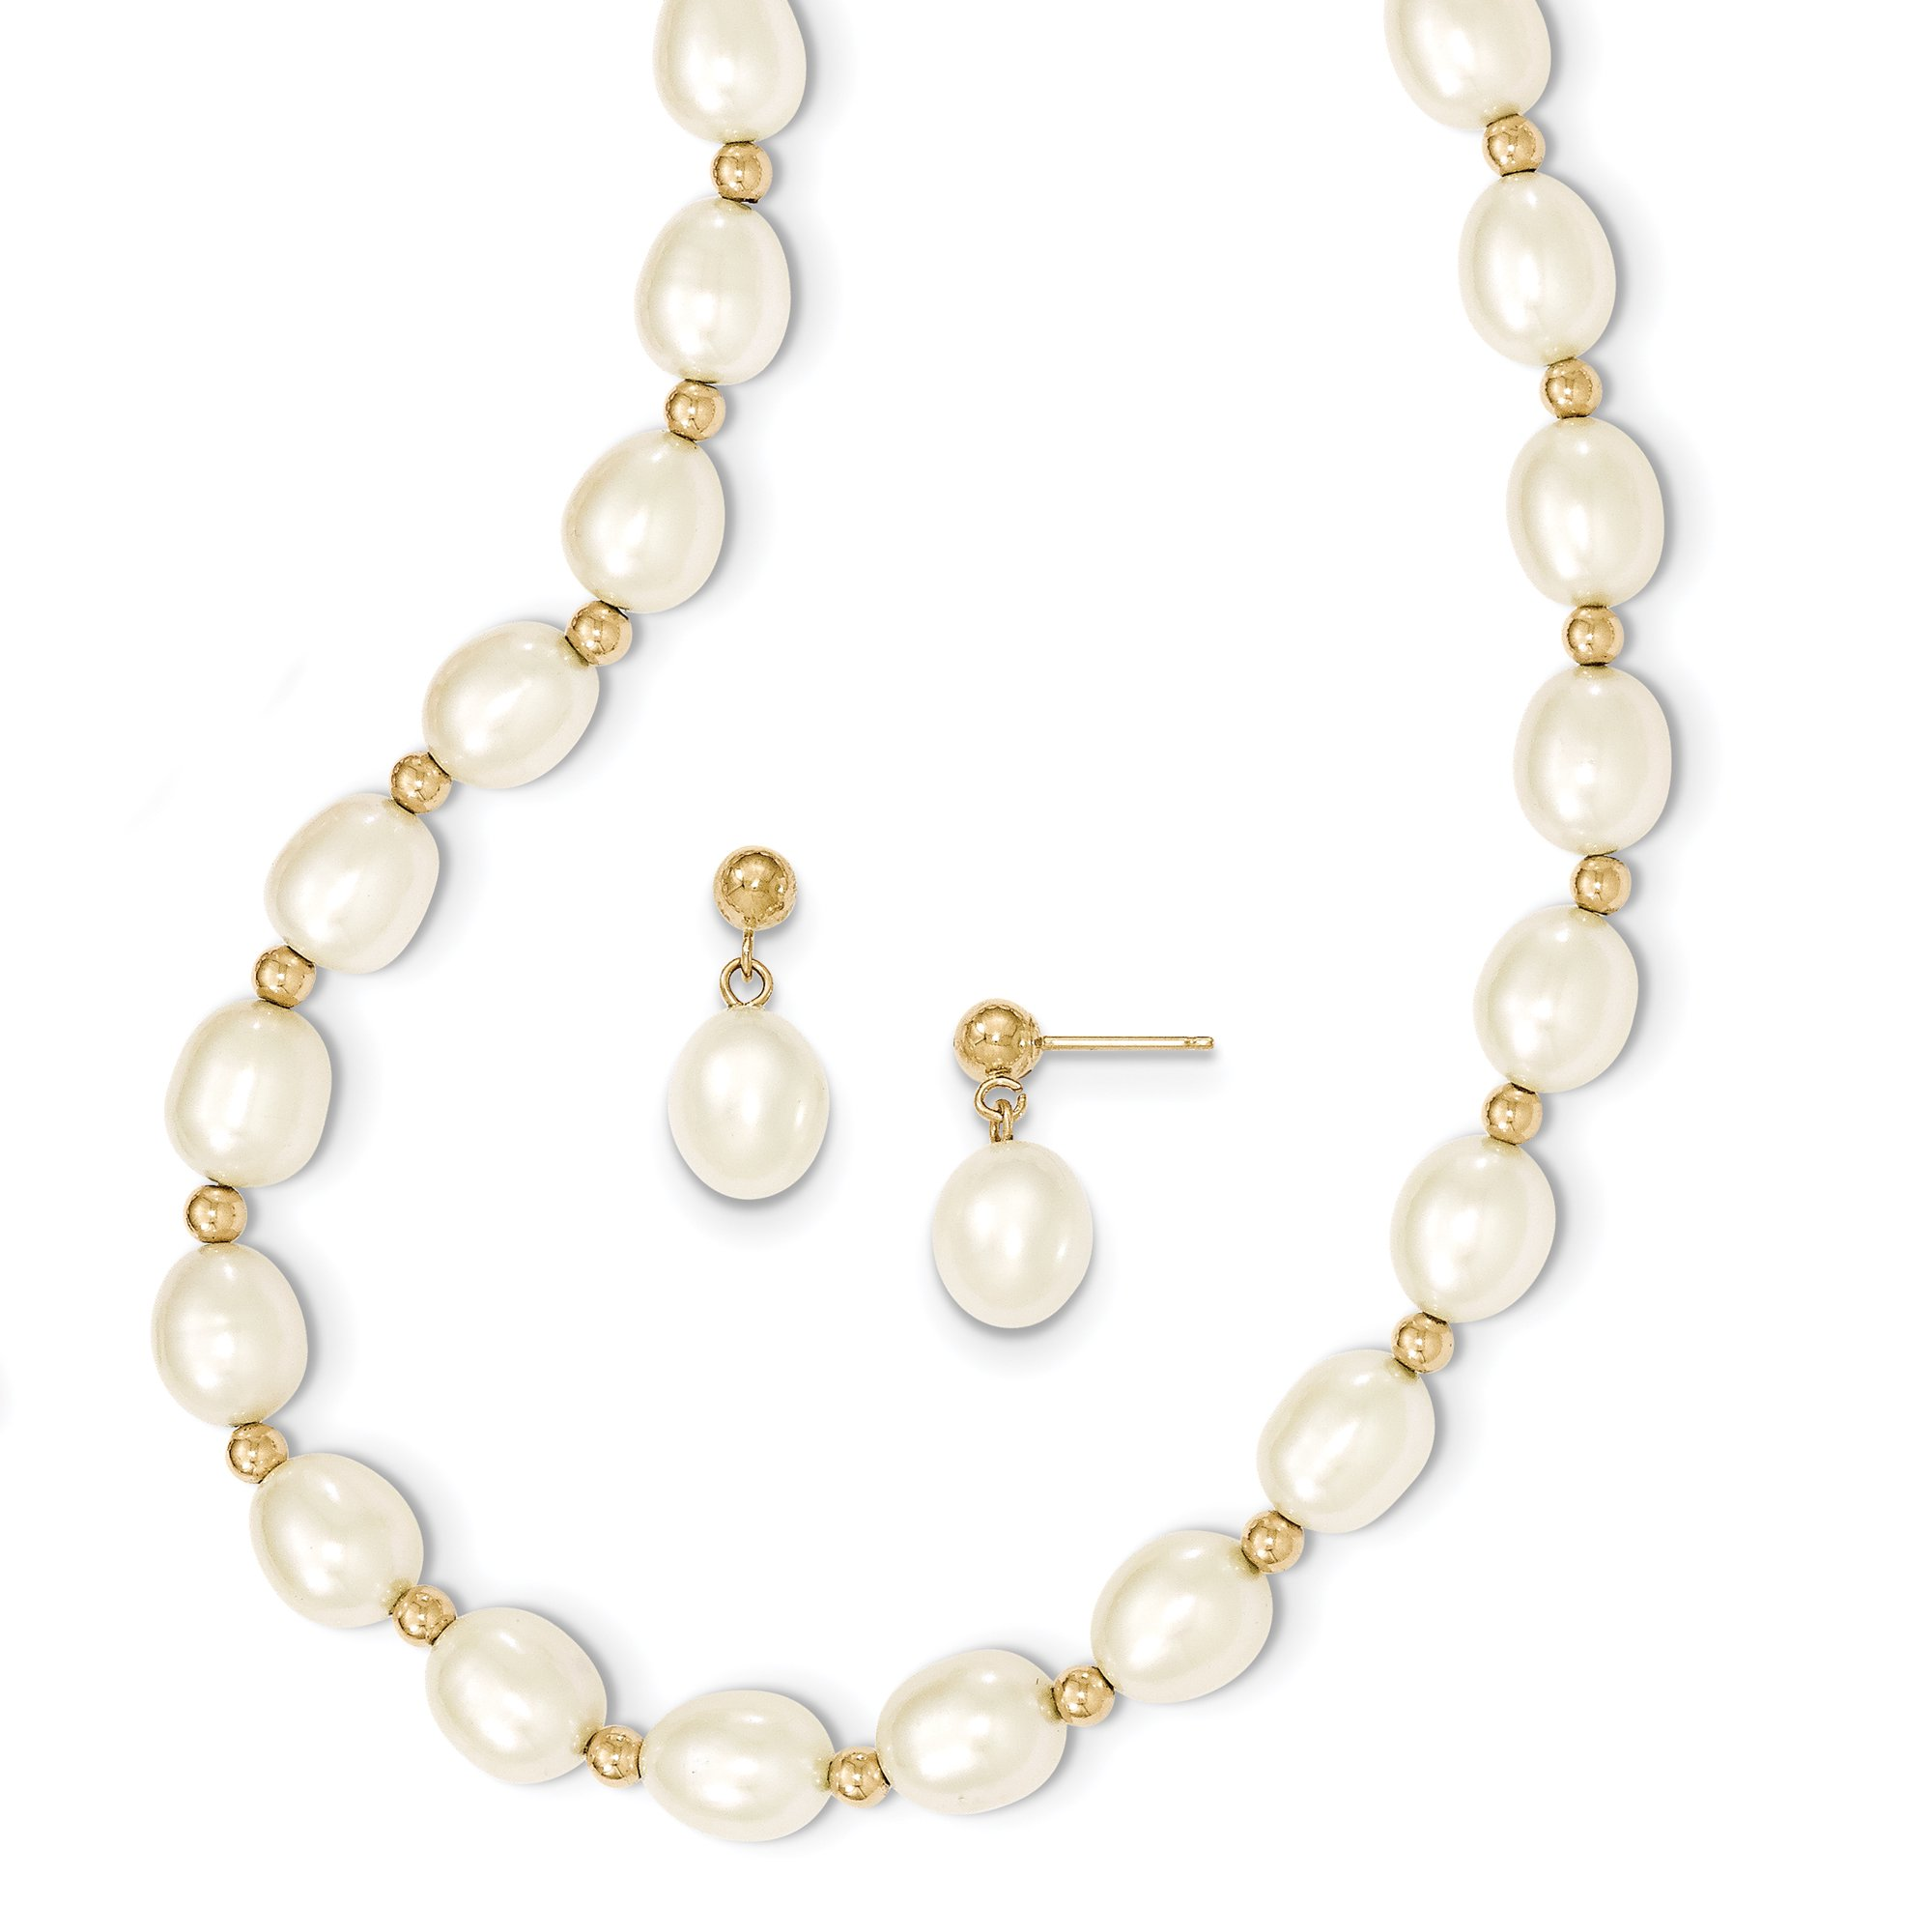 6ce2b9f30f367 14k Yellow Gold 8mm White Freshwater Cultured Pearl Chain Necklace ...